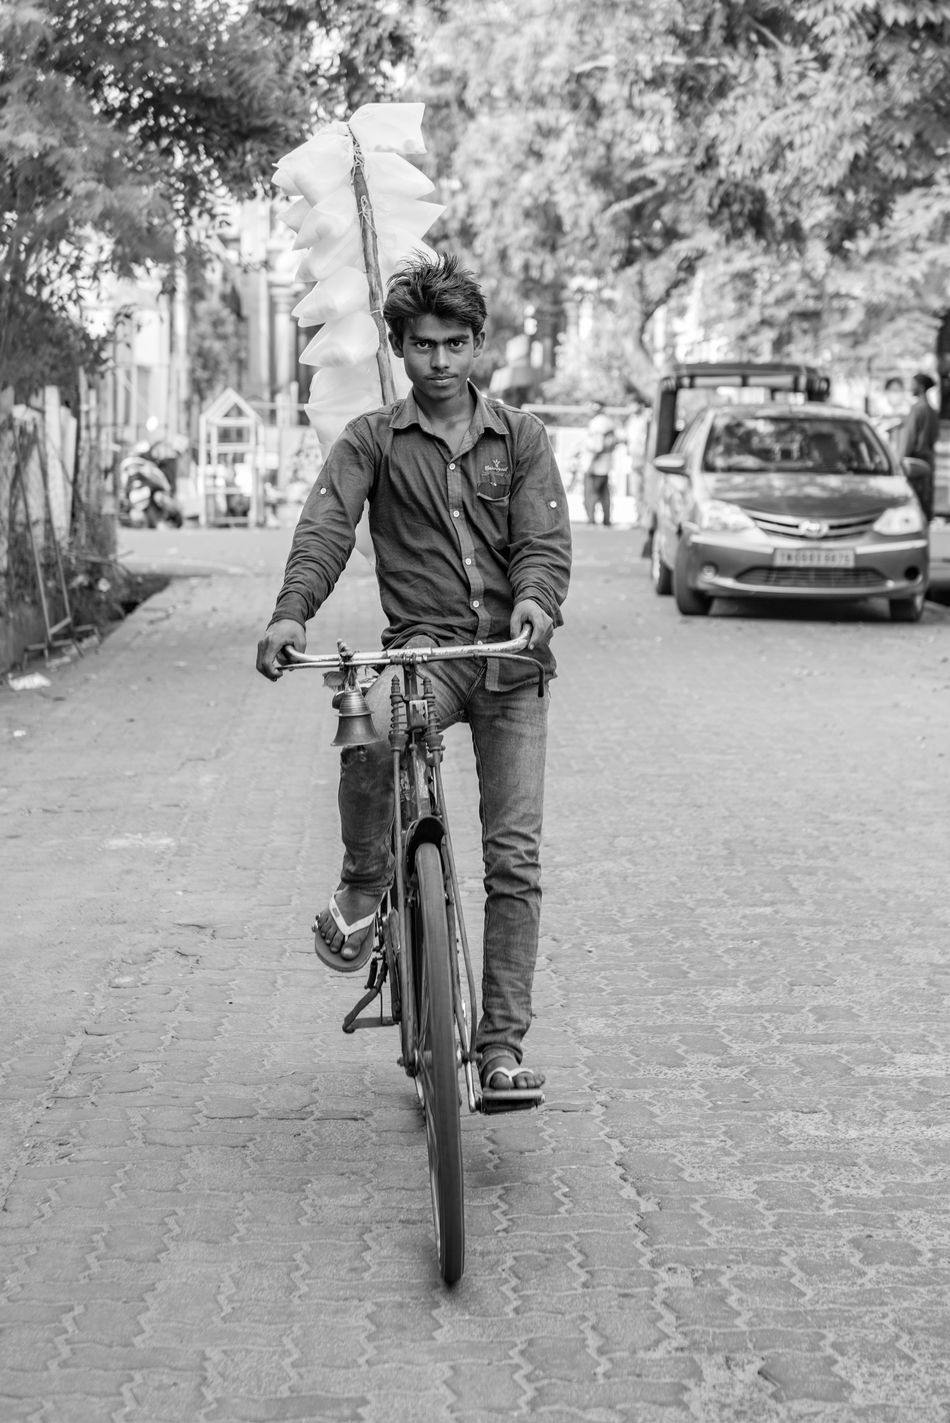 """Portrait of a candy man. On the streets of old Pondi, it is common to see young men trying to sell cotton candy displayed on their bikes. They will try to sweet talk you into buying their sugar while cycling from street to street. (Nikon D810 24-70mm f/2.8 ƒ/3.2 50mm 1/160"""" iso 200) Black And White Candy Cycling Editorial  India Journey Man Portrait Streetphotography Travel"""